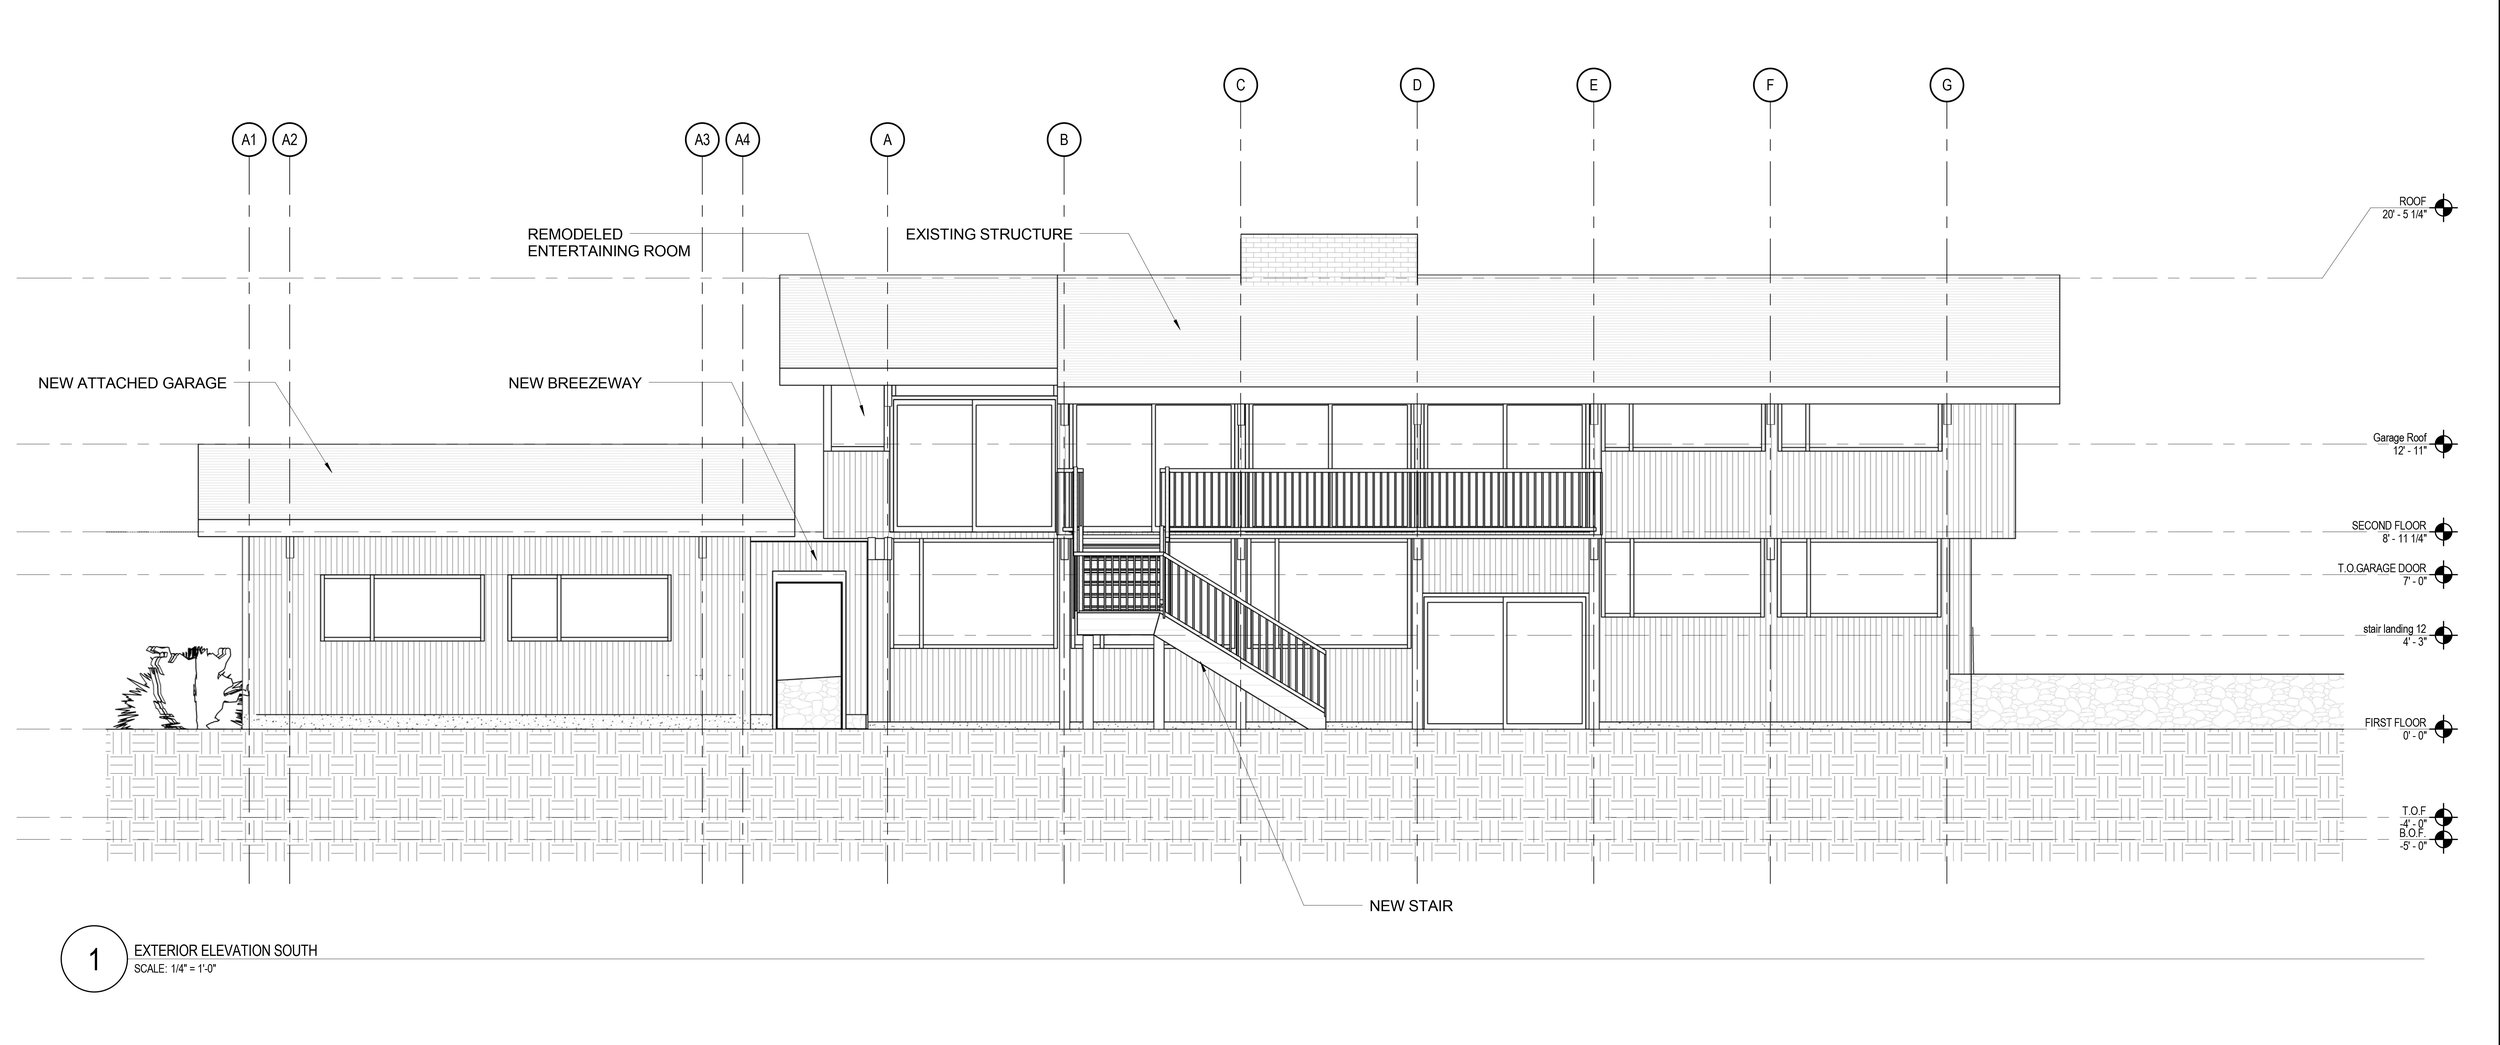 EXTERIOR ELEVATIONS - SOUTH & EAST.jpg